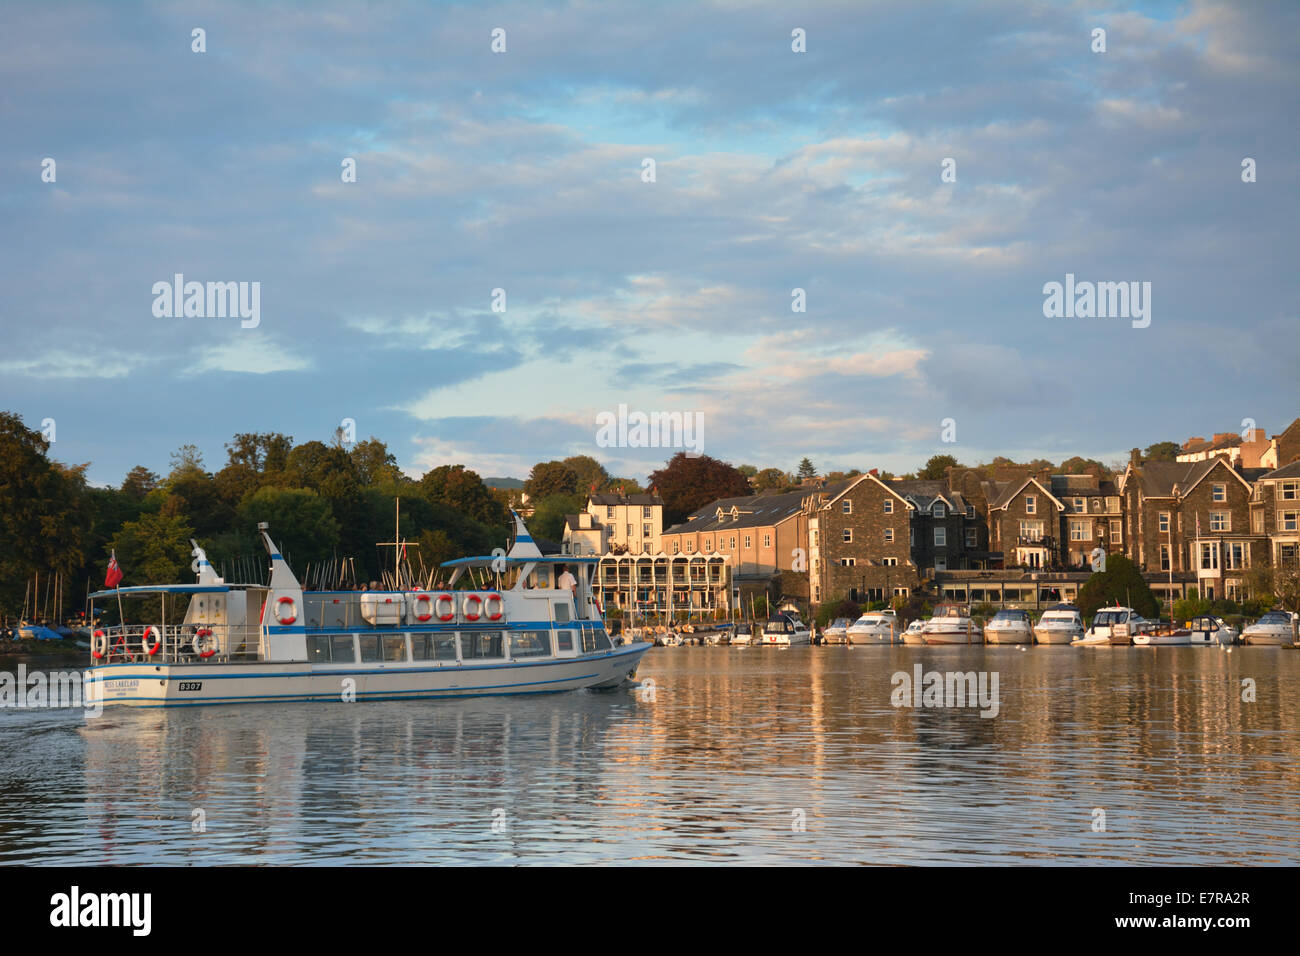 A Windermere cruiser entering Bowness in the early evening sunlight - Stock Image